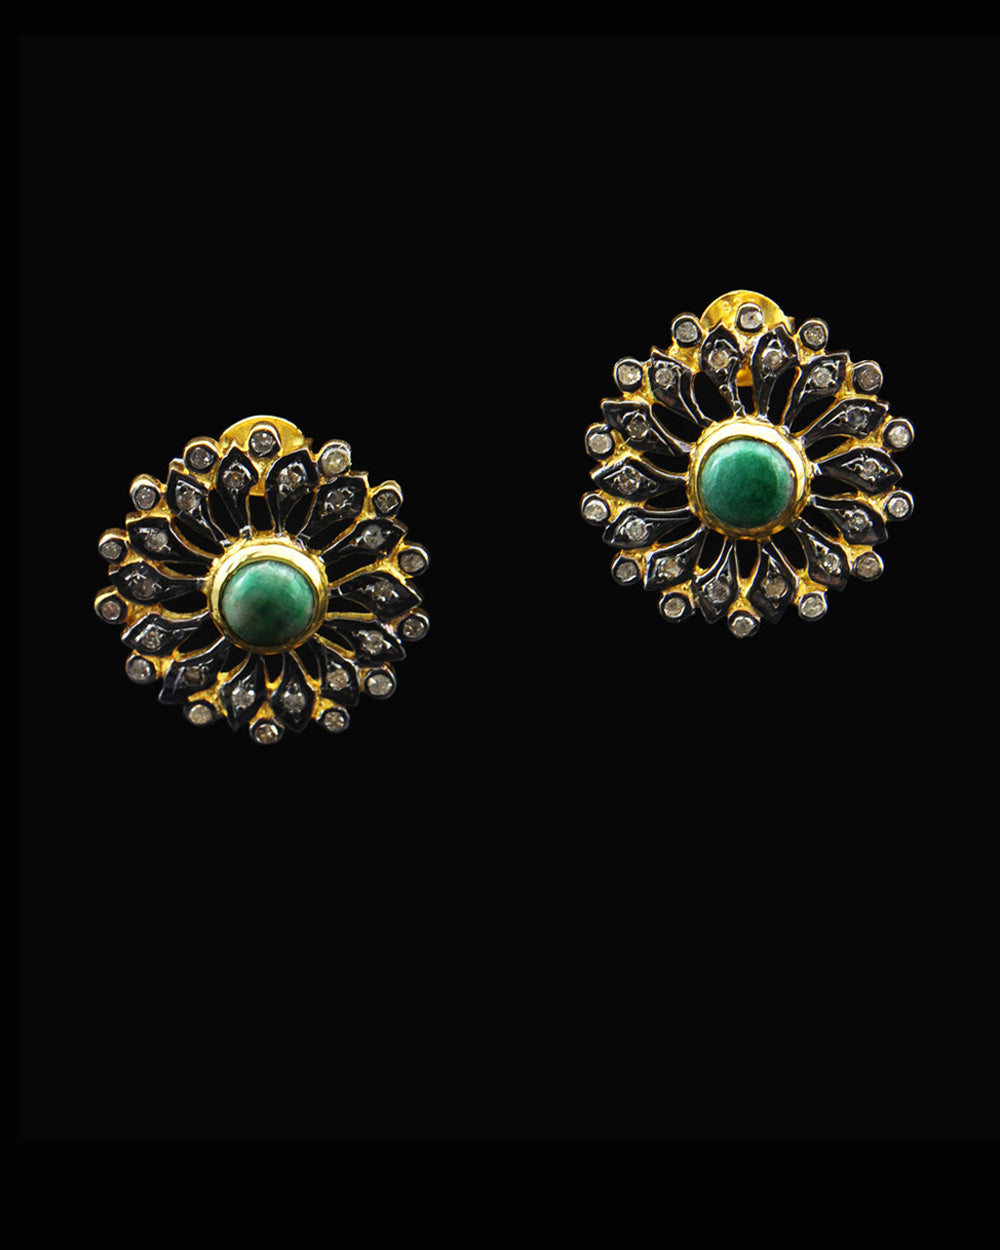 Emerald and Diamond Post Earrings in Gold Vermeil